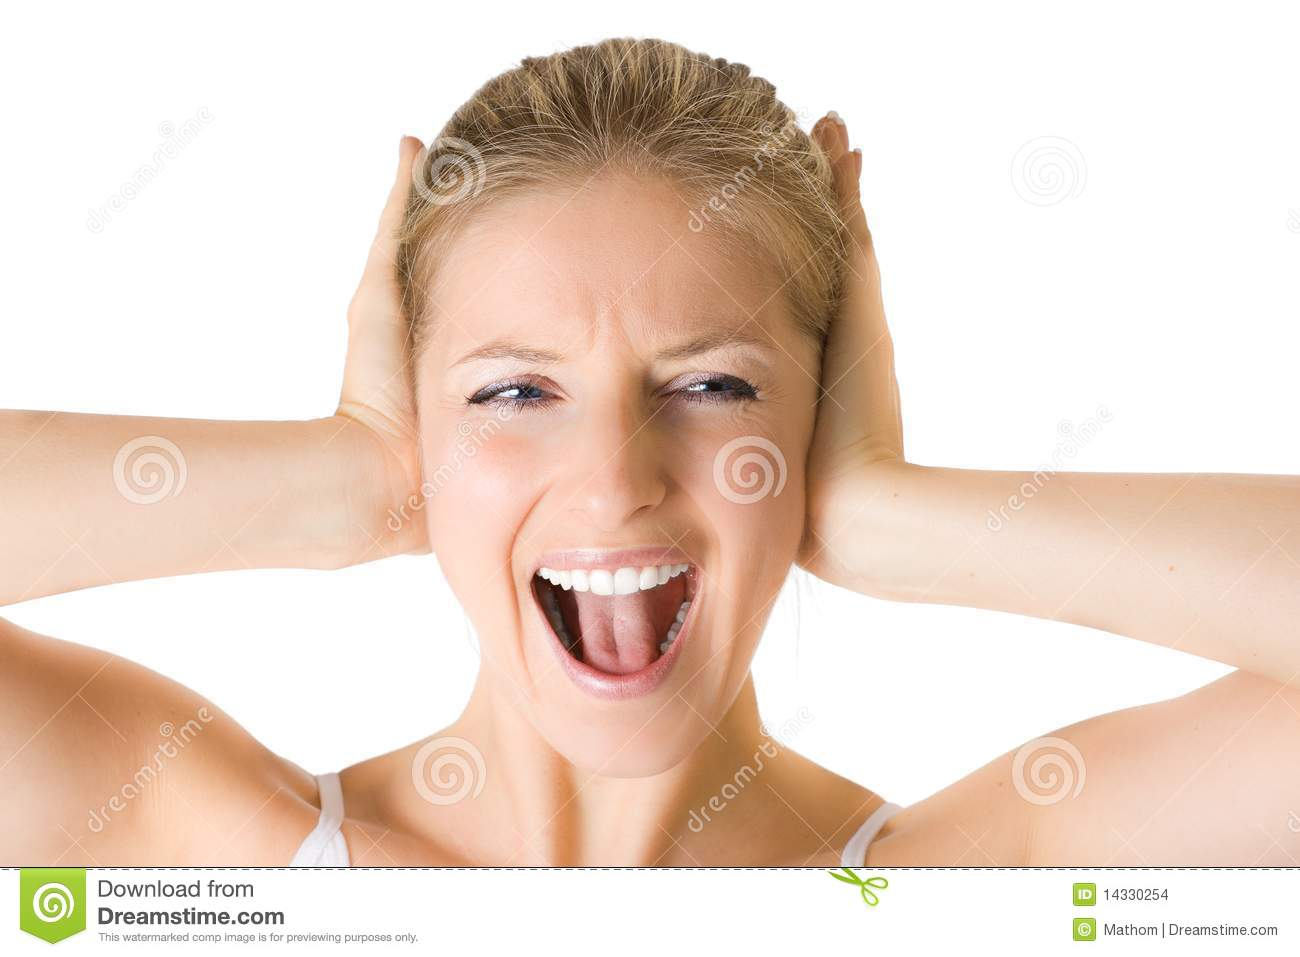 Woman Shouting on Asian House Design